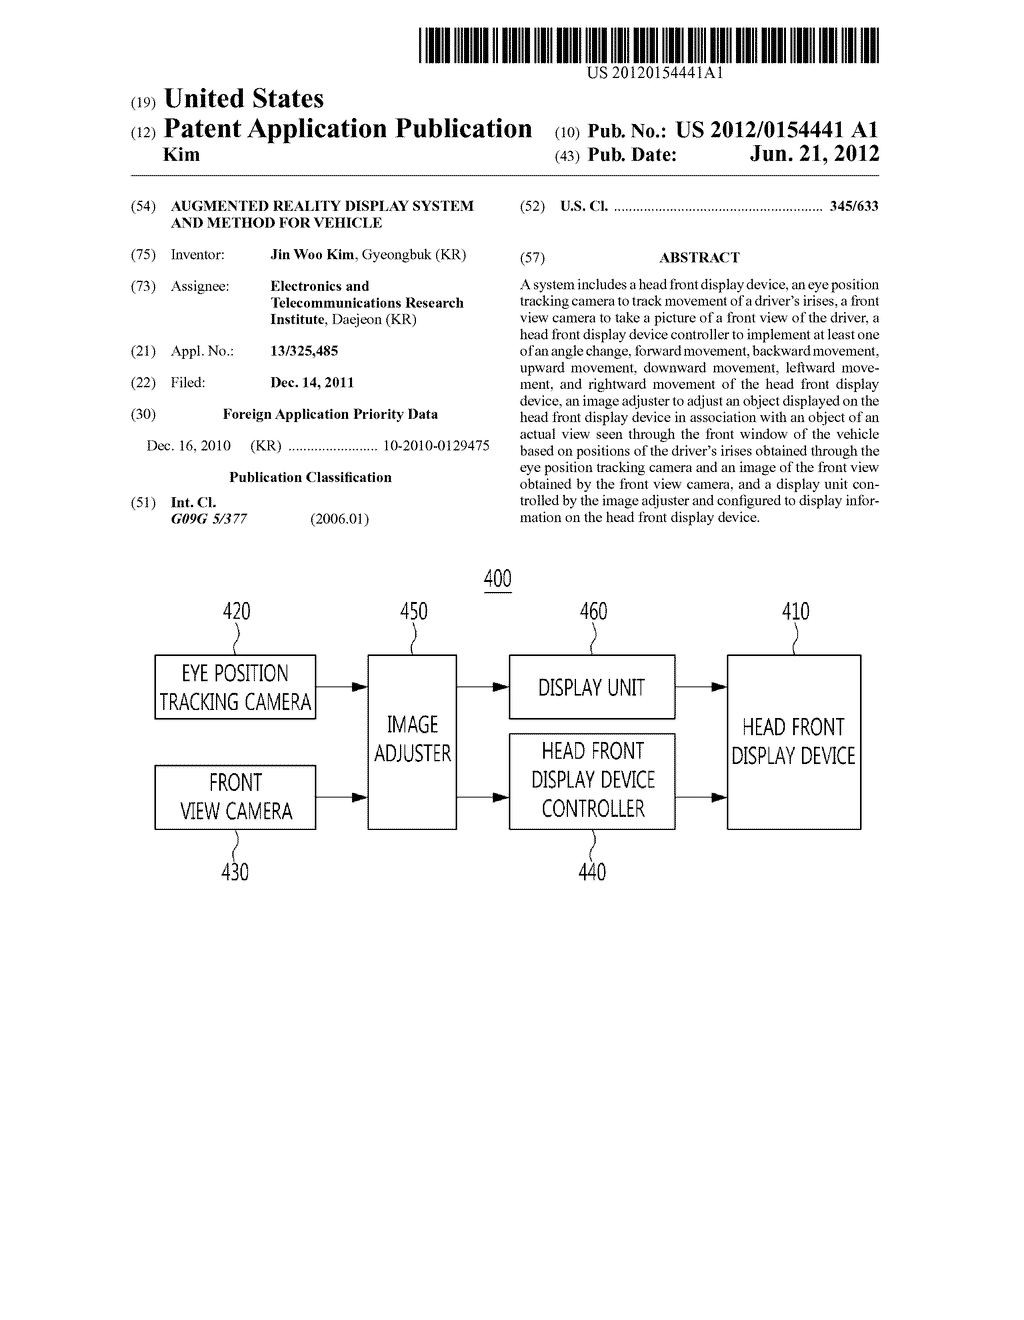 AUGMENTED REALITY DISPLAY SYSTEM AND METHOD FOR VEHICLE - diagram, schematic, and image 01